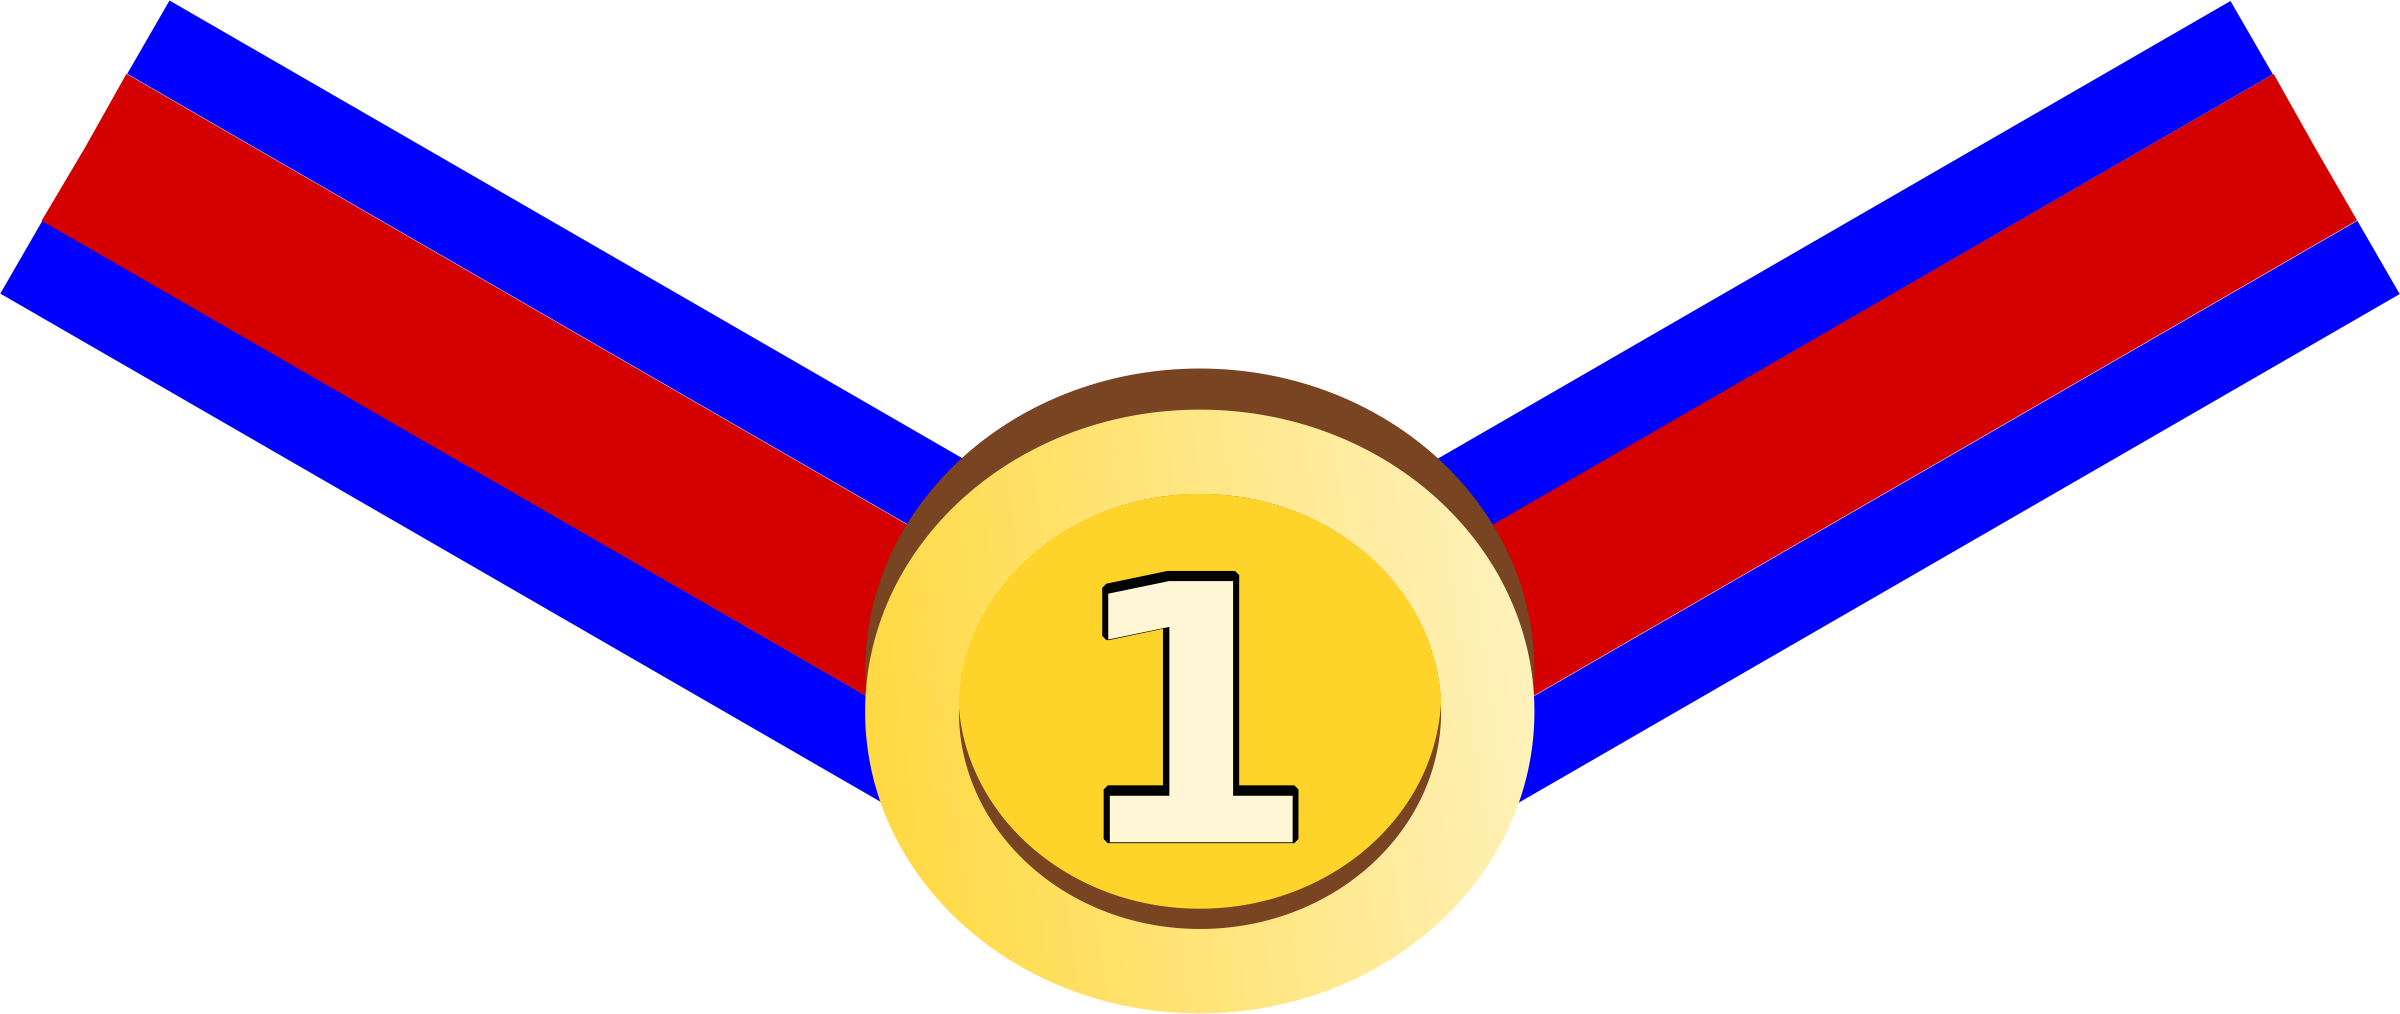 clip art medals free - photo #8